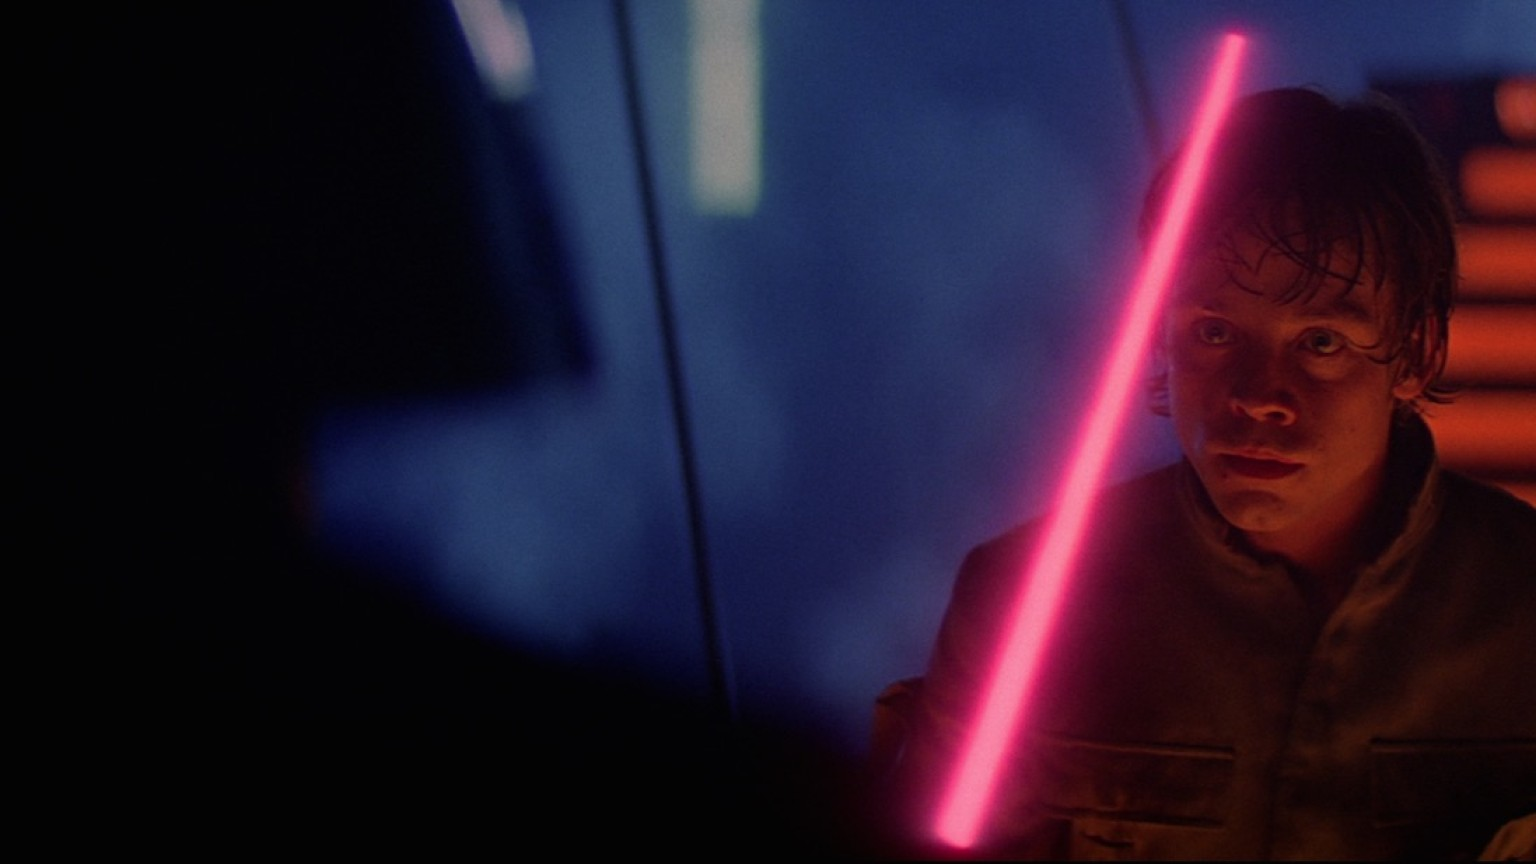 The Empire Strikes Back - Luke and Darth Vader on Cloud City